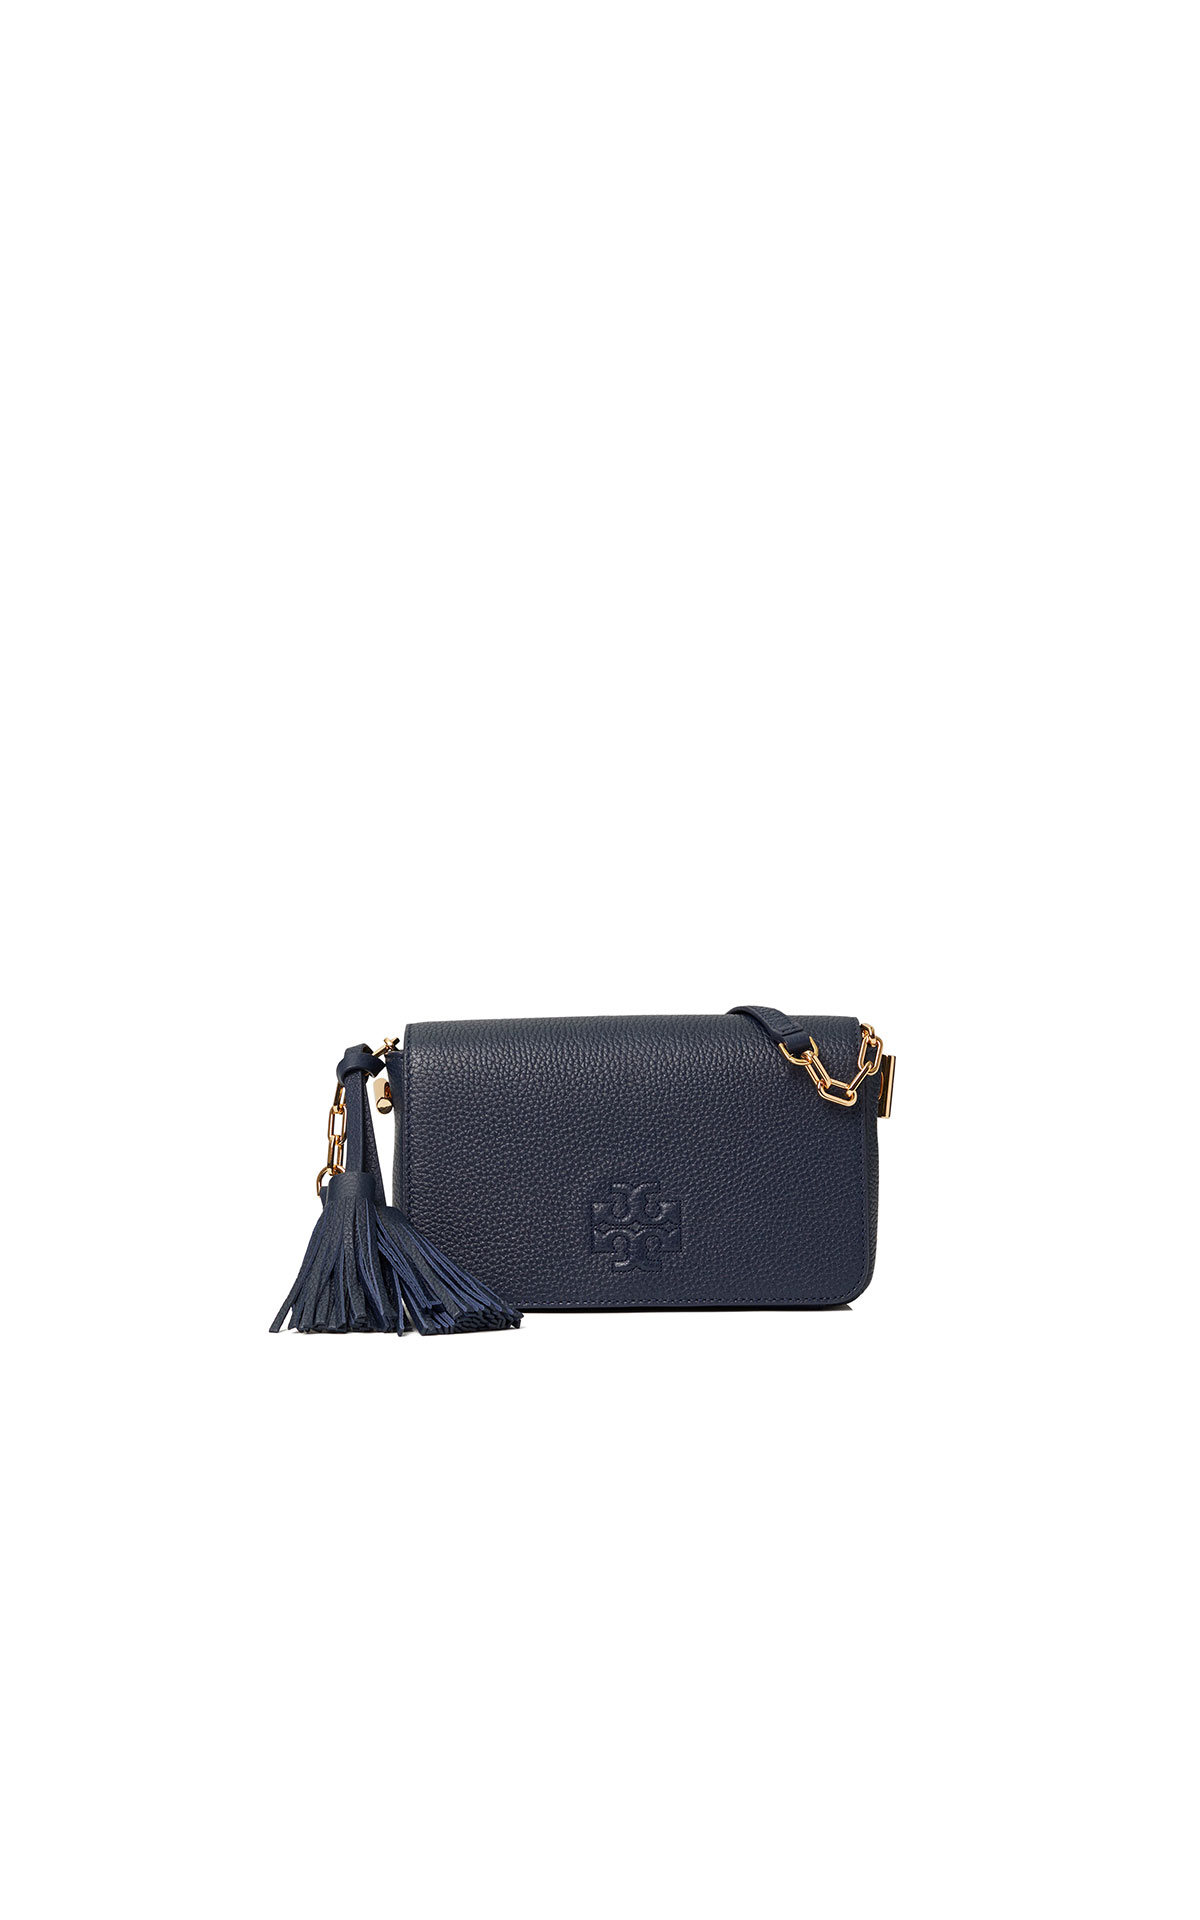 Tory Burch Thea mini bag from Bicester Village